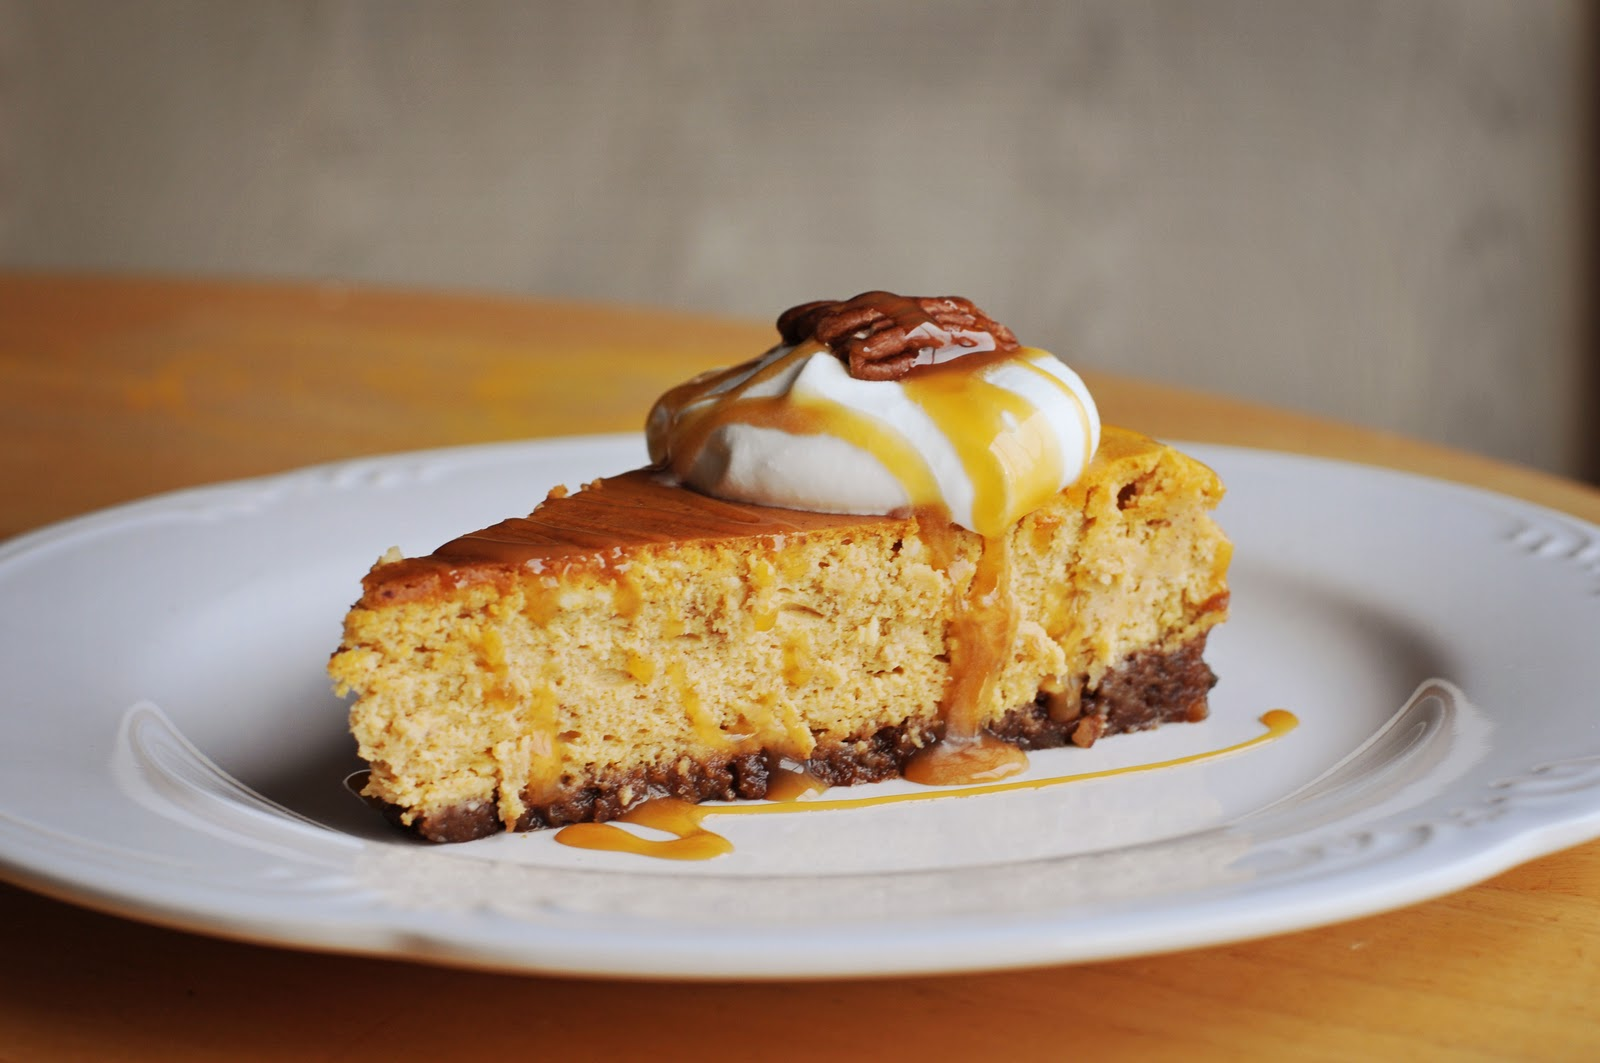 Barefoot and Baking: Pumpkin Cheesecake with Pecan-Gingersnap Crust